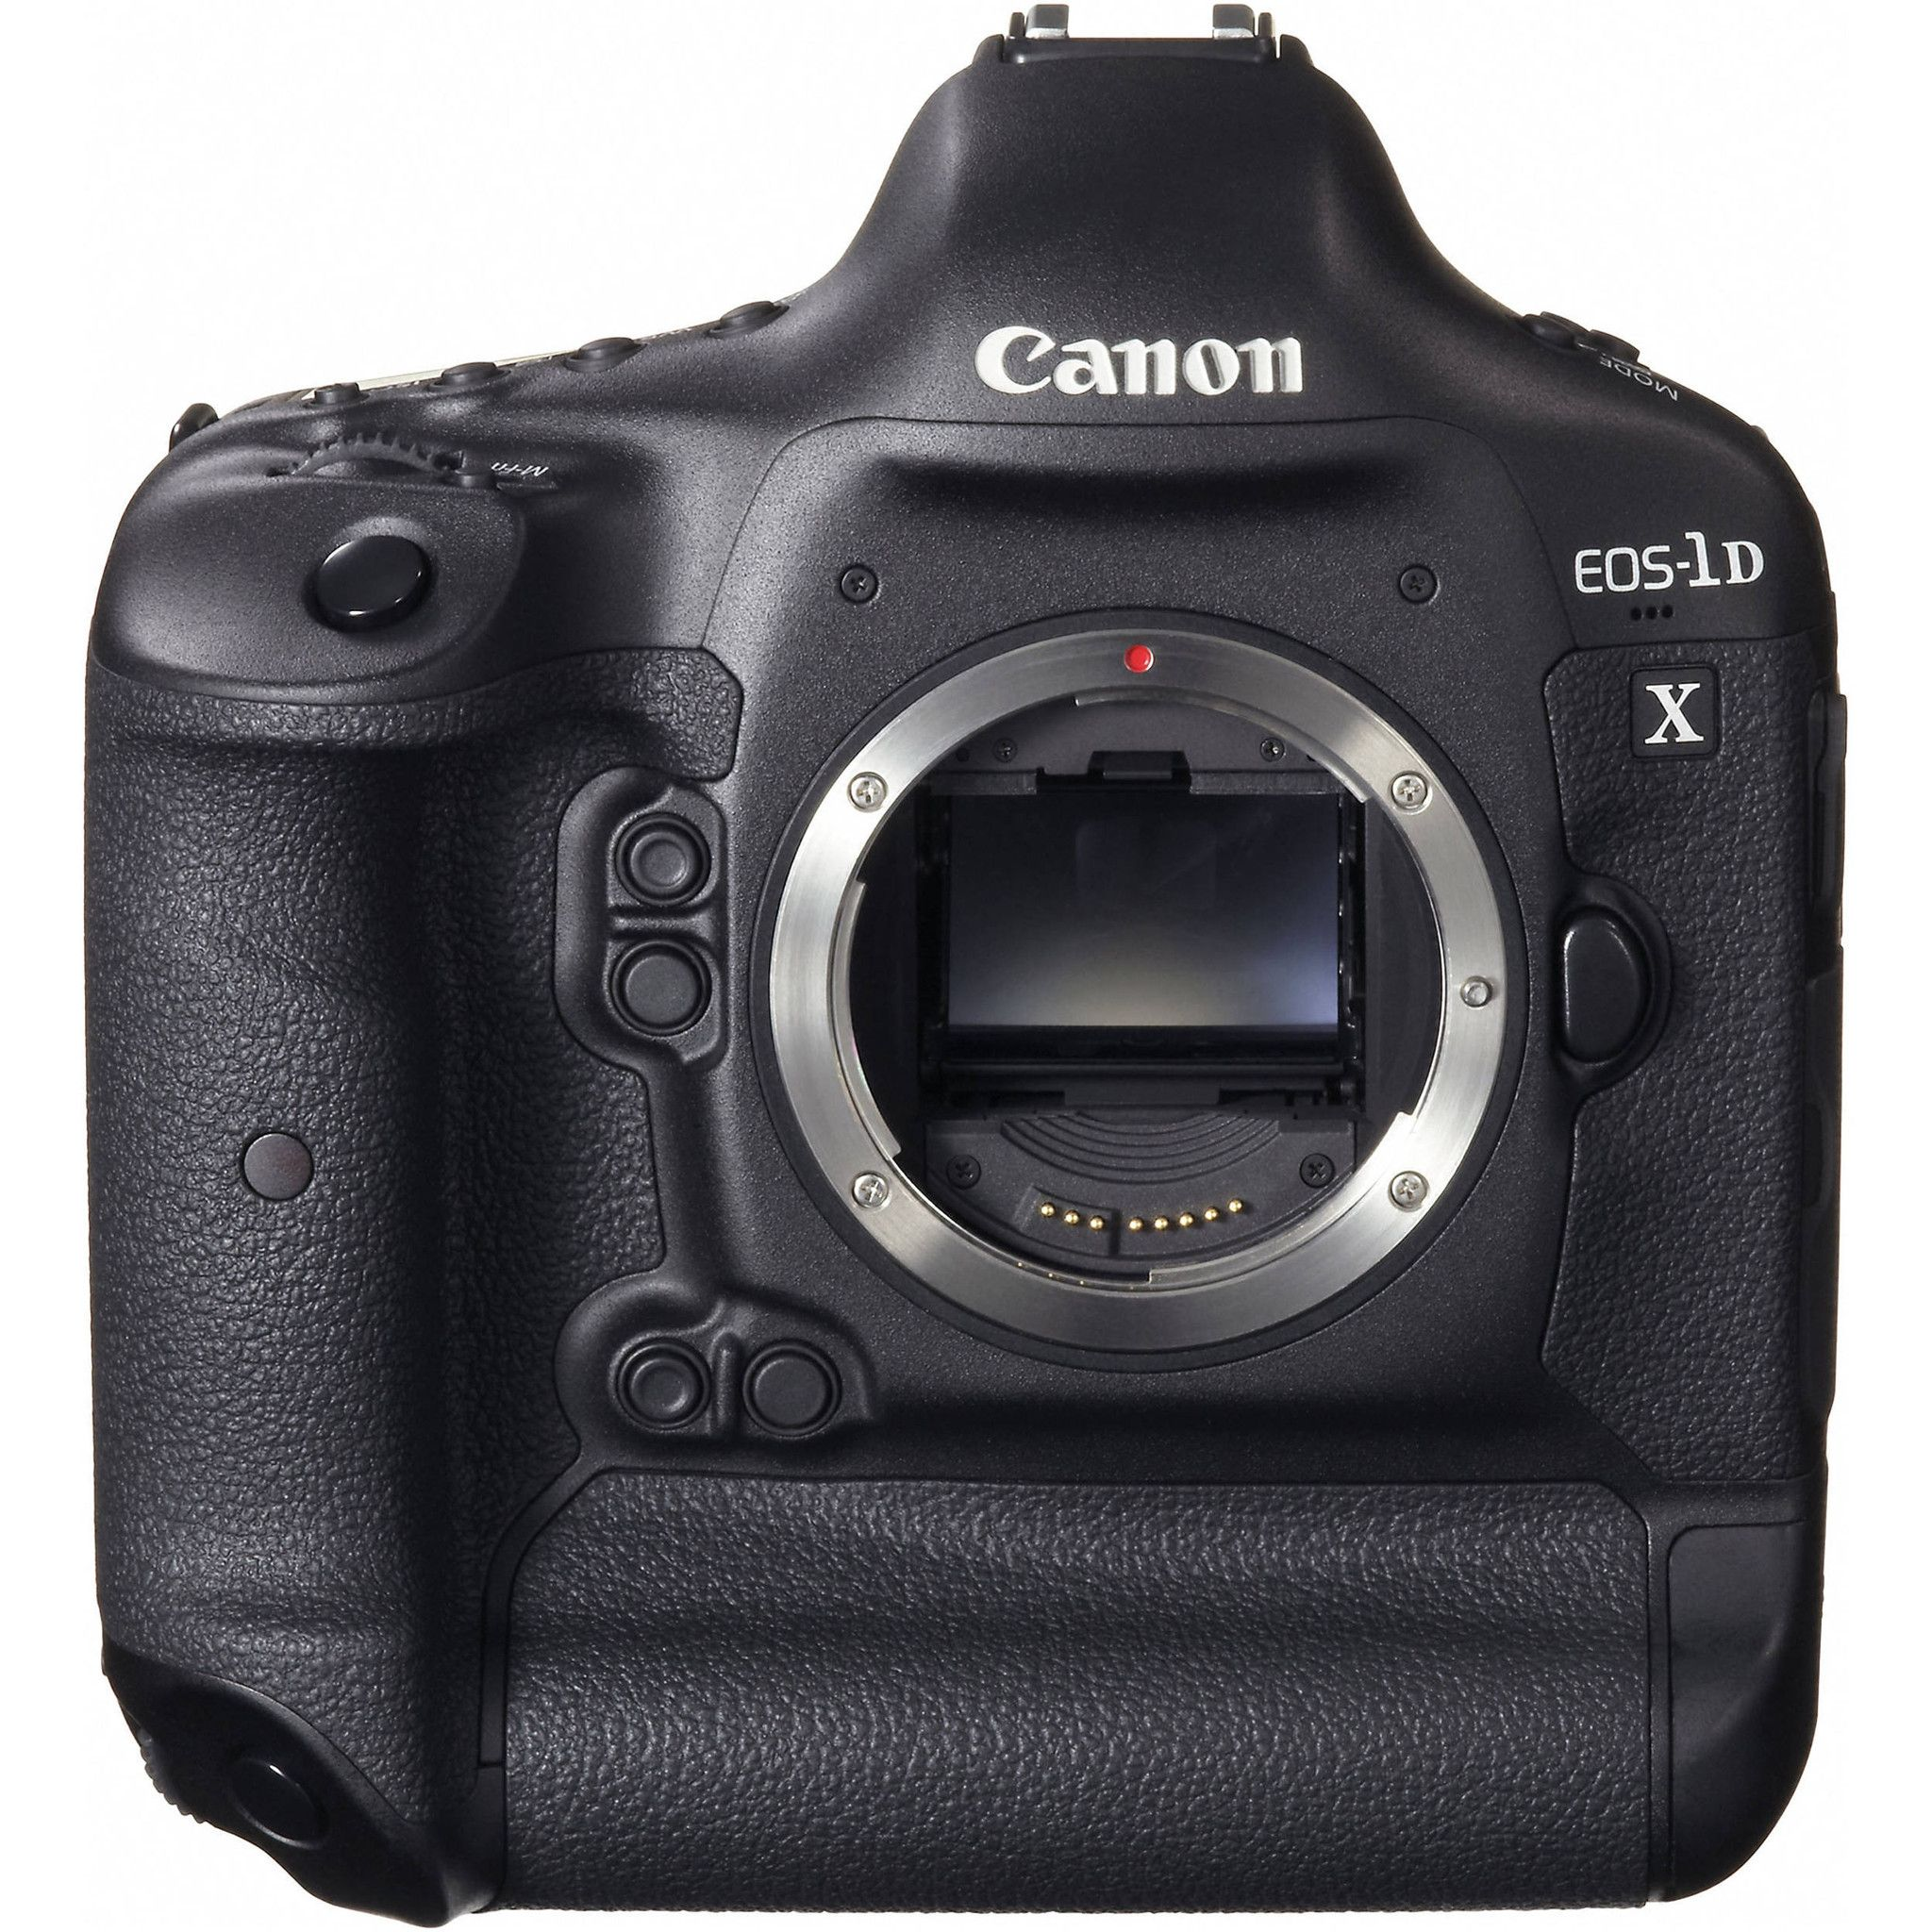 Canon Eos 1dx Body Only Ca5253b002 The Ultimate Eos Canon Has Brought The Best Of The Eos 1d Series Of Digital Came Canon Dslr Digital Slr Canon Dslr Camera